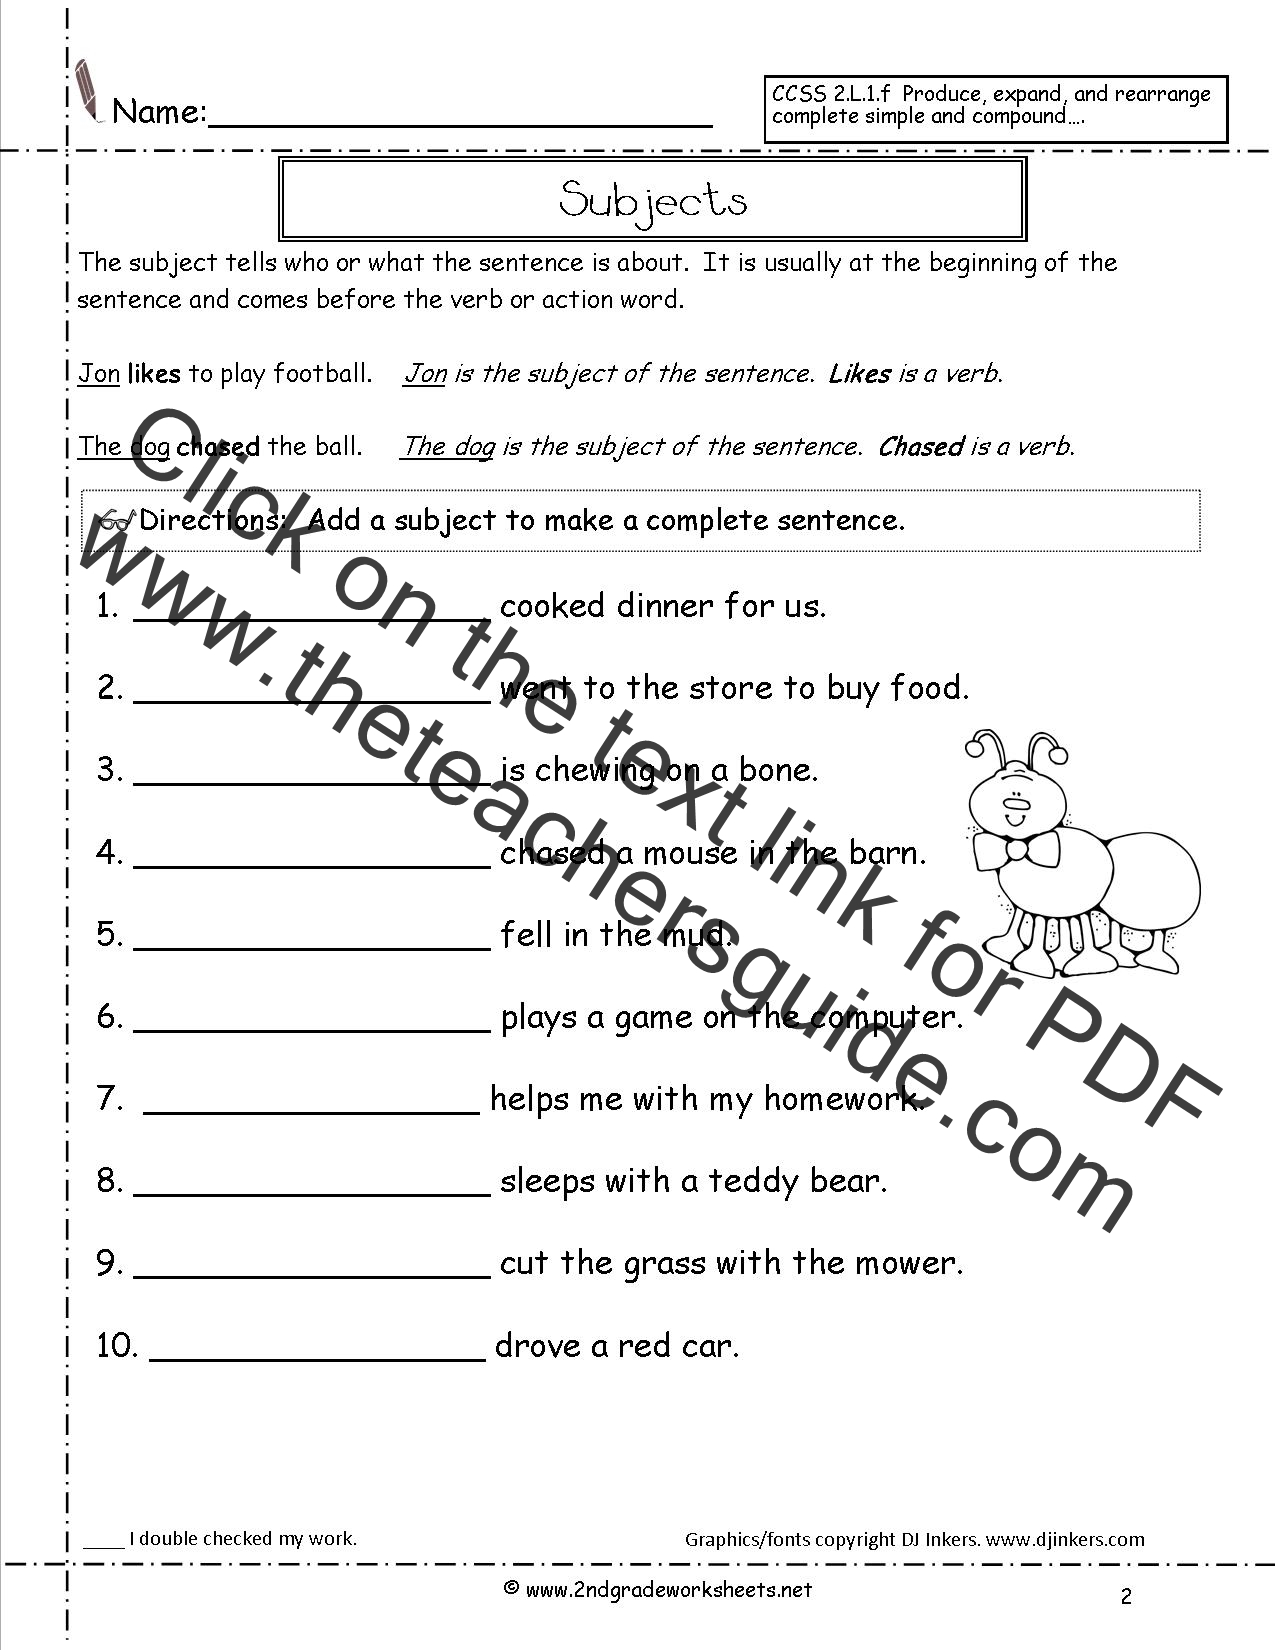 Worksheet Kinds Of Sentences Worksheet second grade sentences worksheets ccss 2 l 1 f subjects worksheet sentence subjects